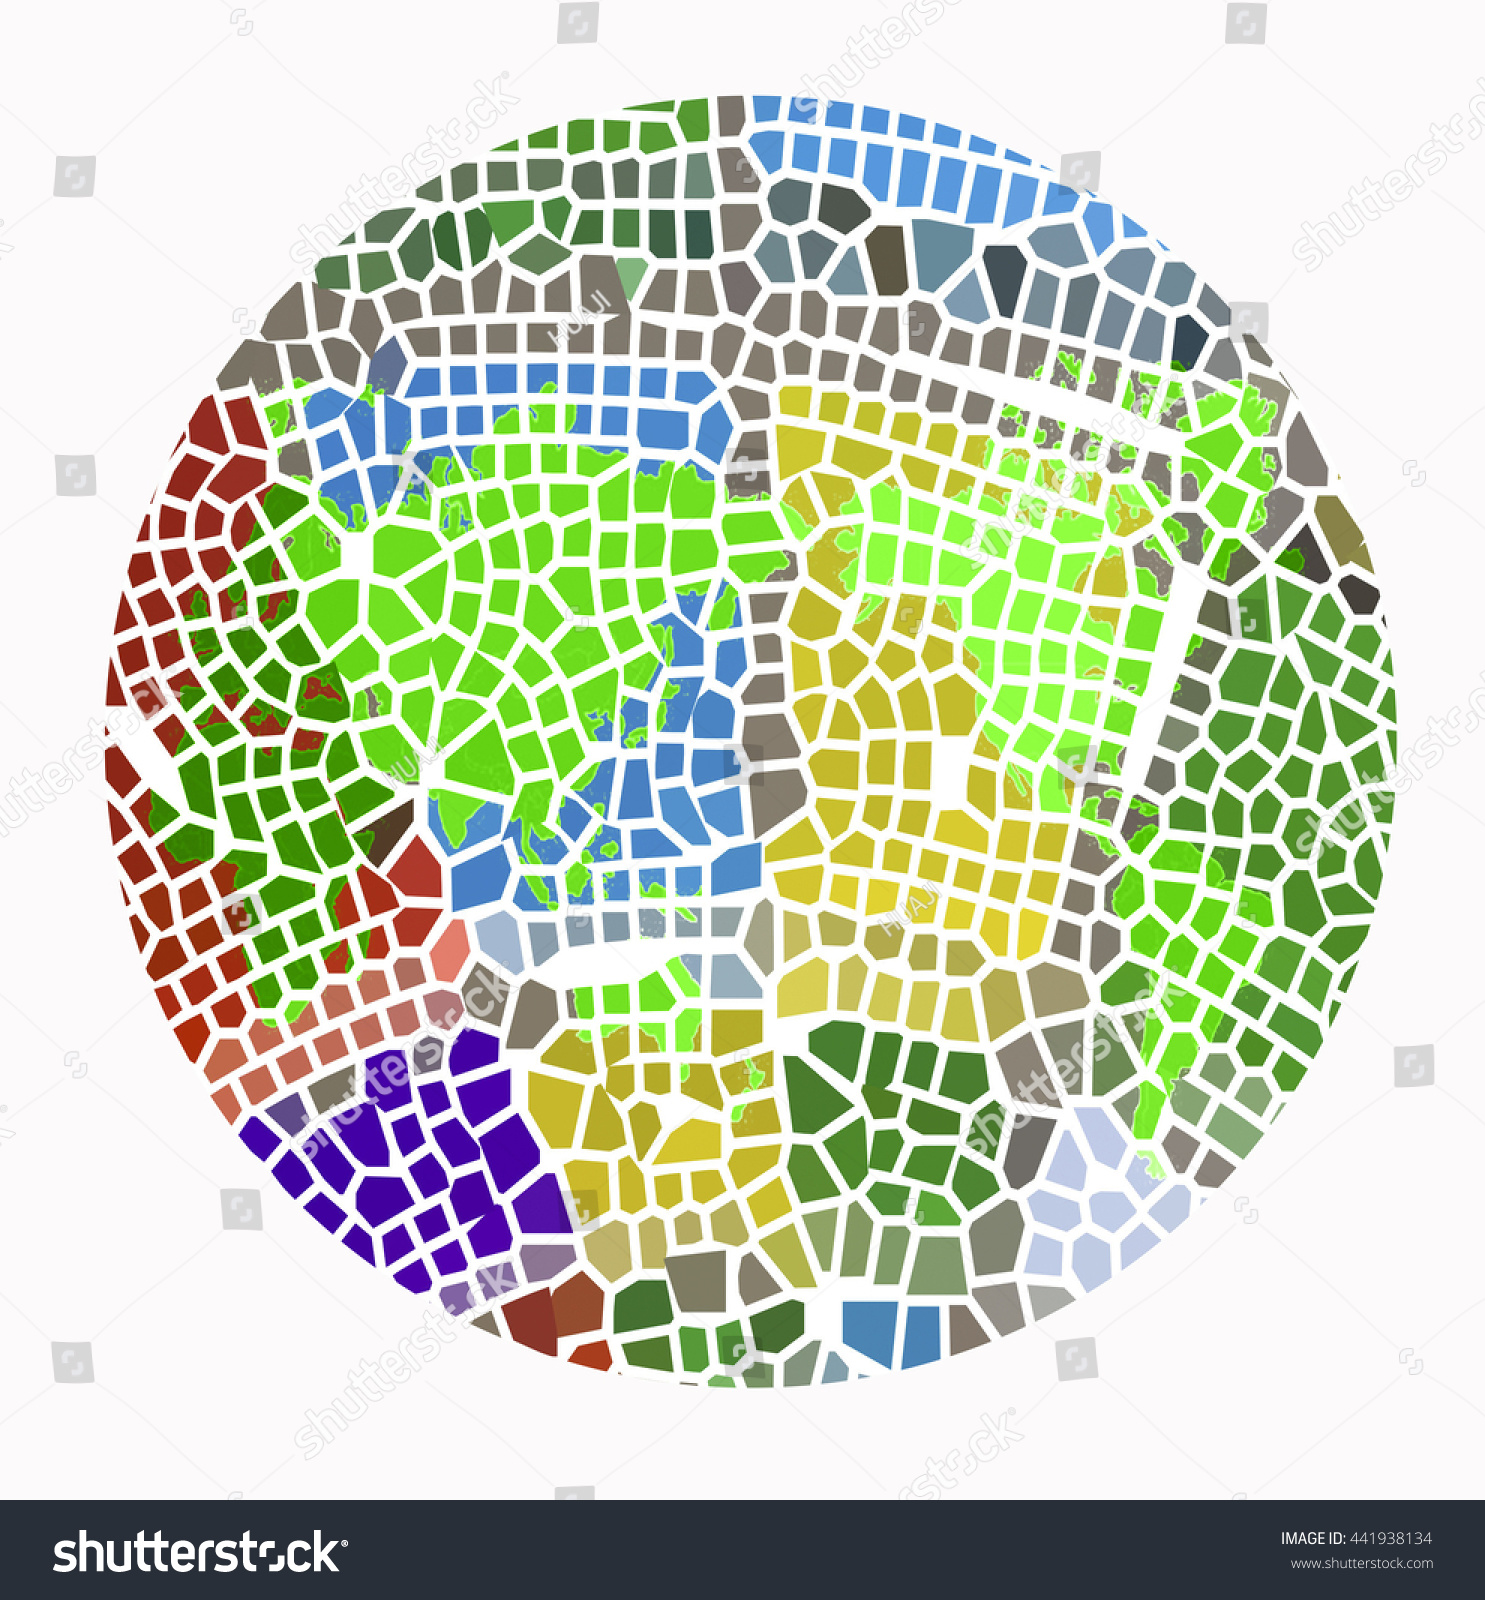 Color Blind Testworld Map Stock Illustration 441938134 - Shutterstock